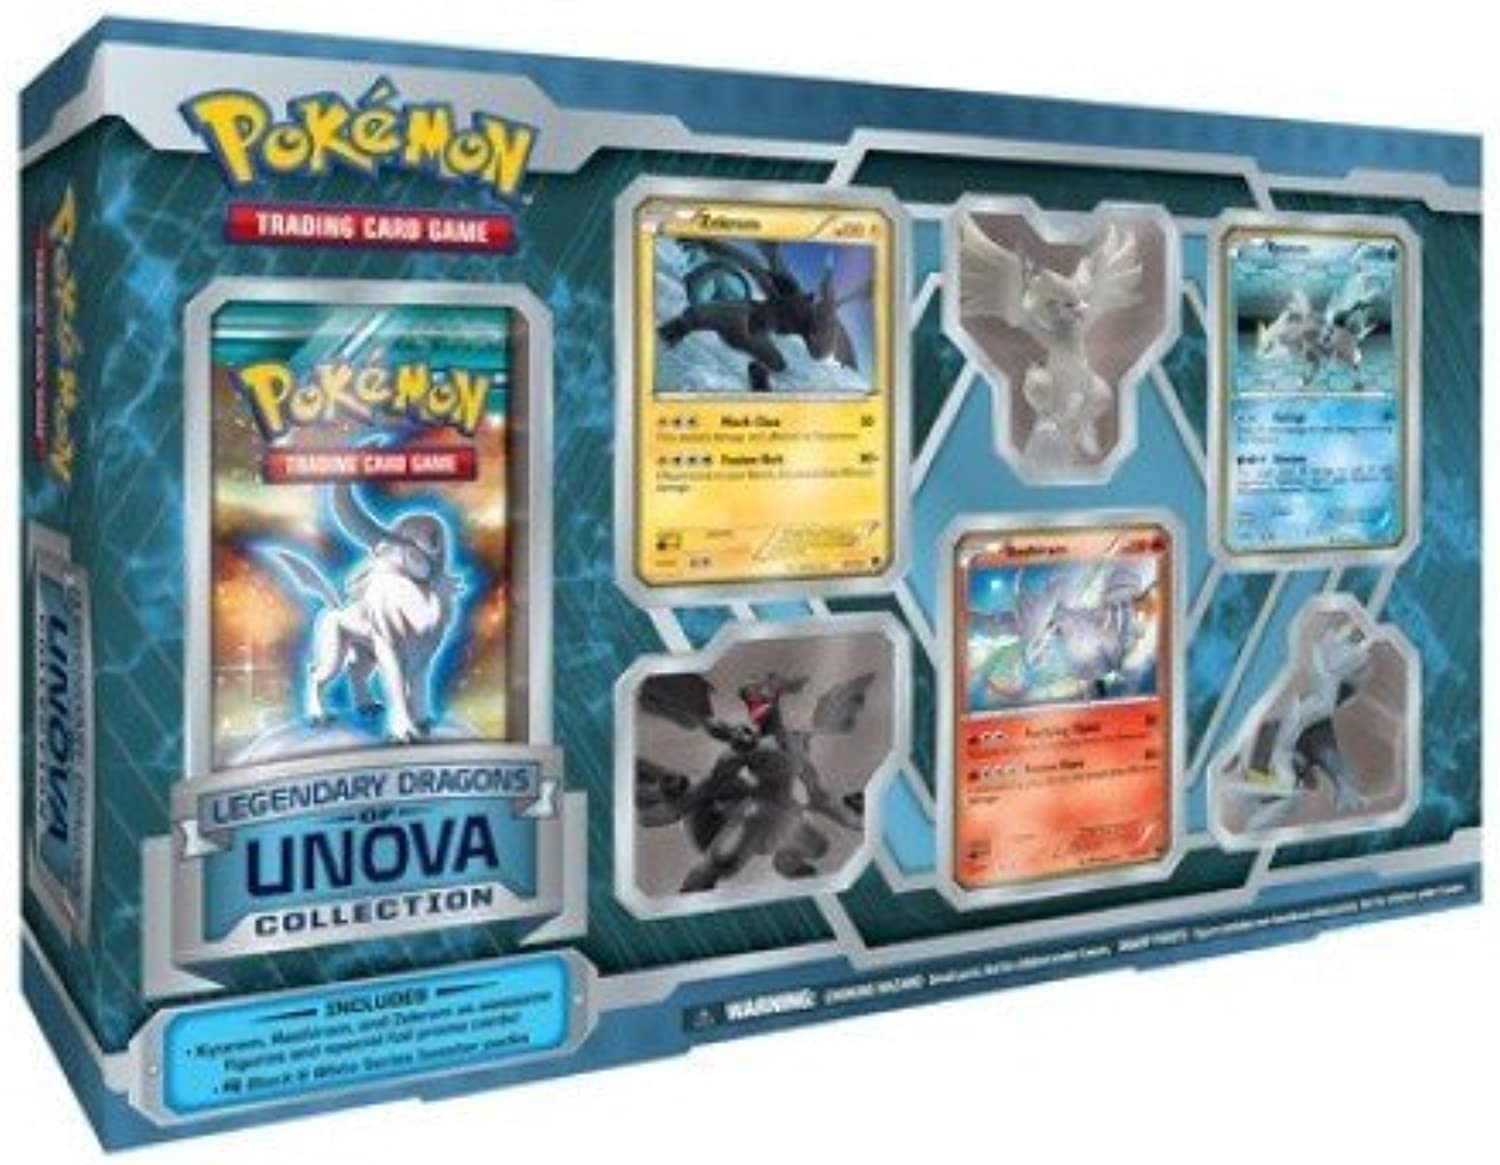 Pokemon Legendary Dragons of Unova Collection scatola [giocattolo]